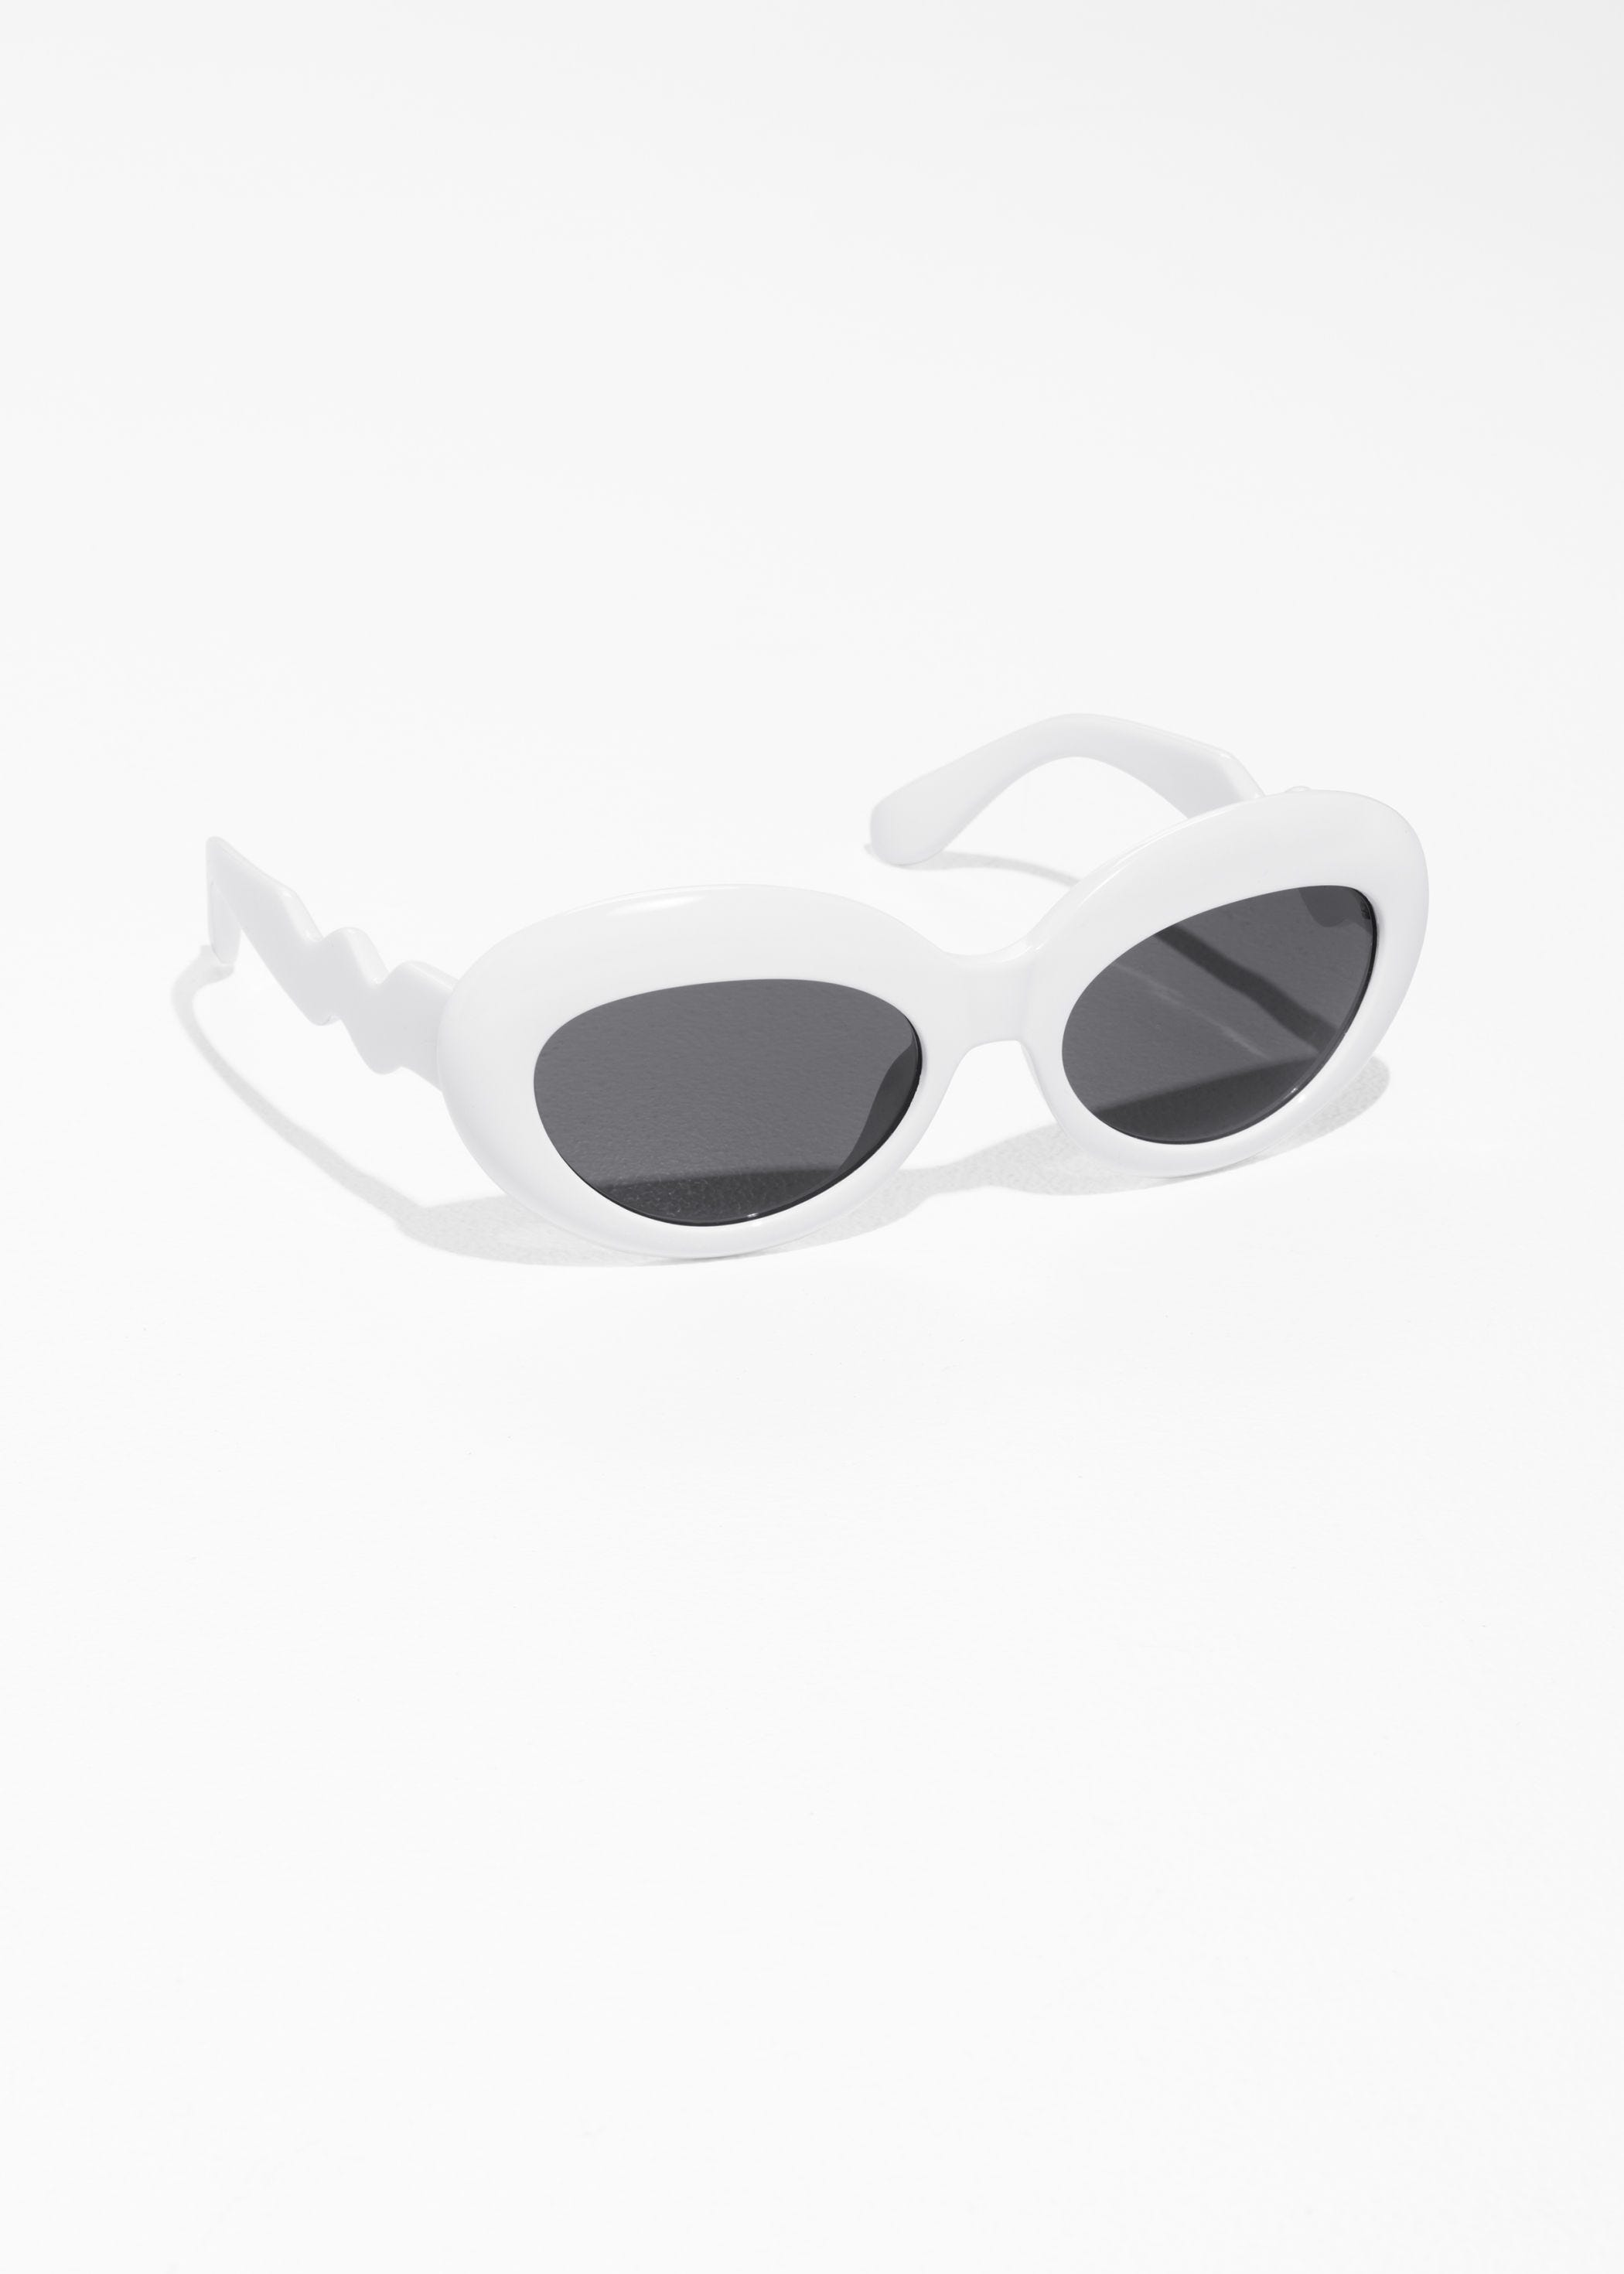 37a0c1c8f5 Best Oval Sunglasses Frames Fit All Face Shapes